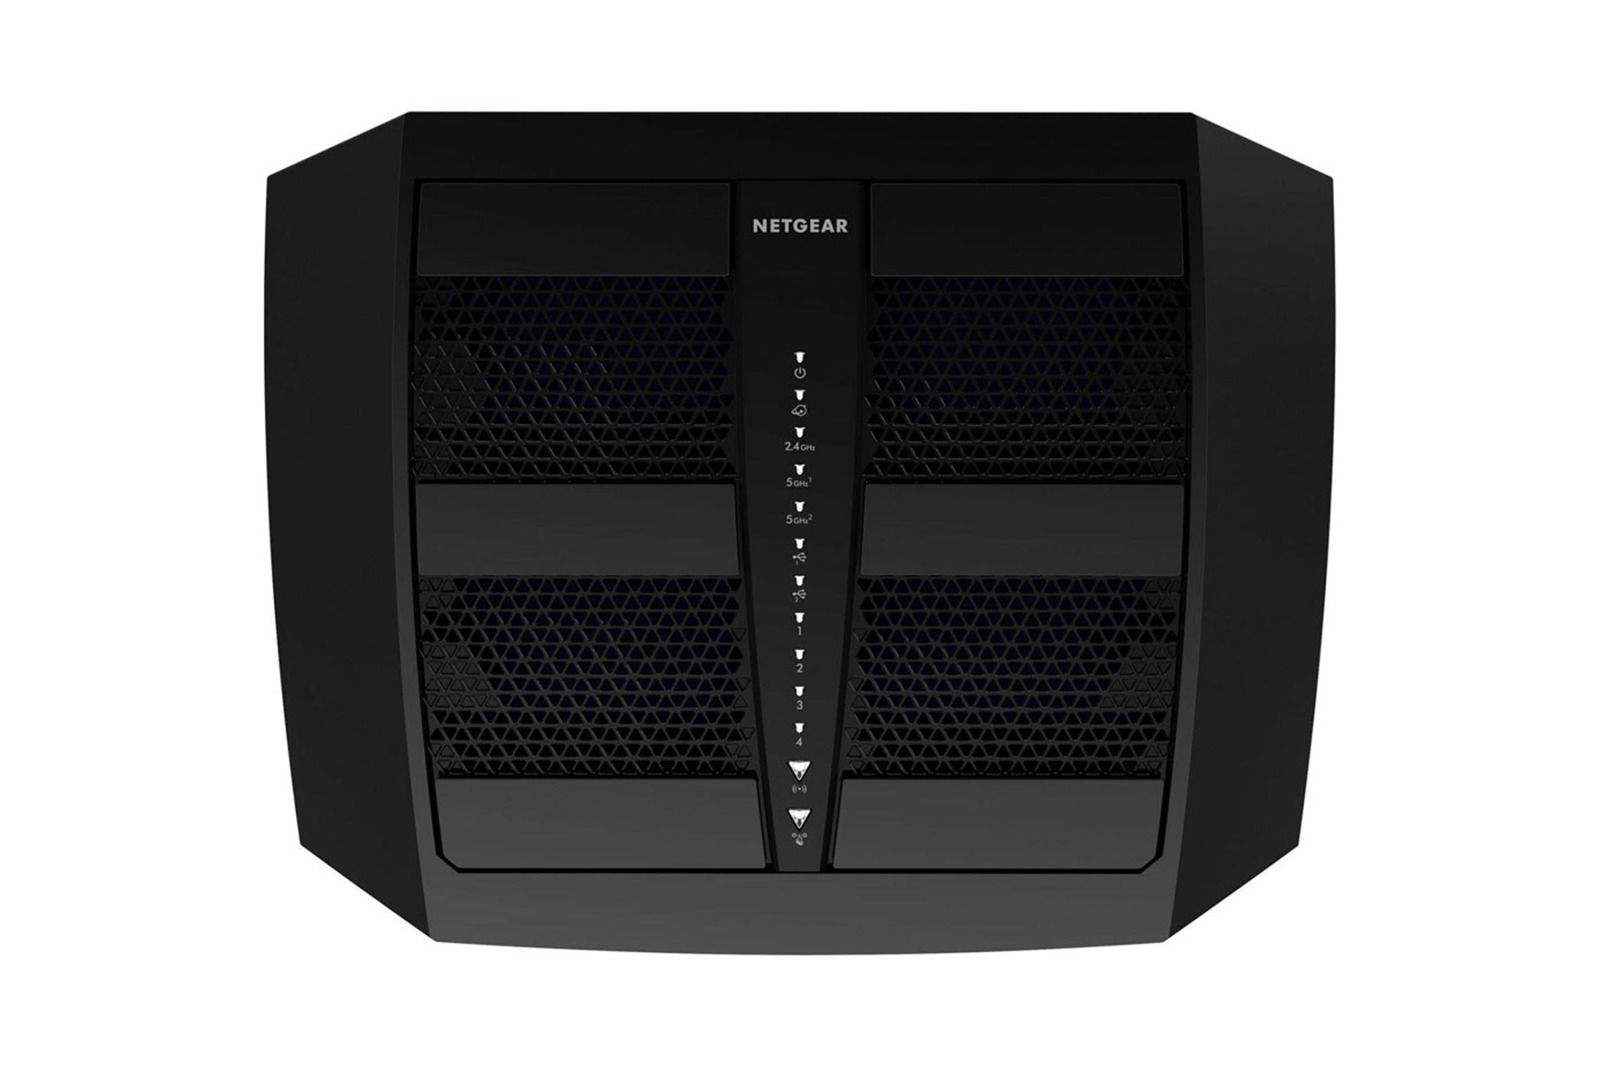 New Netgear AC4000 Nighthawk X6S Tri-Band WiFi Router with MU-MIMO R8000P